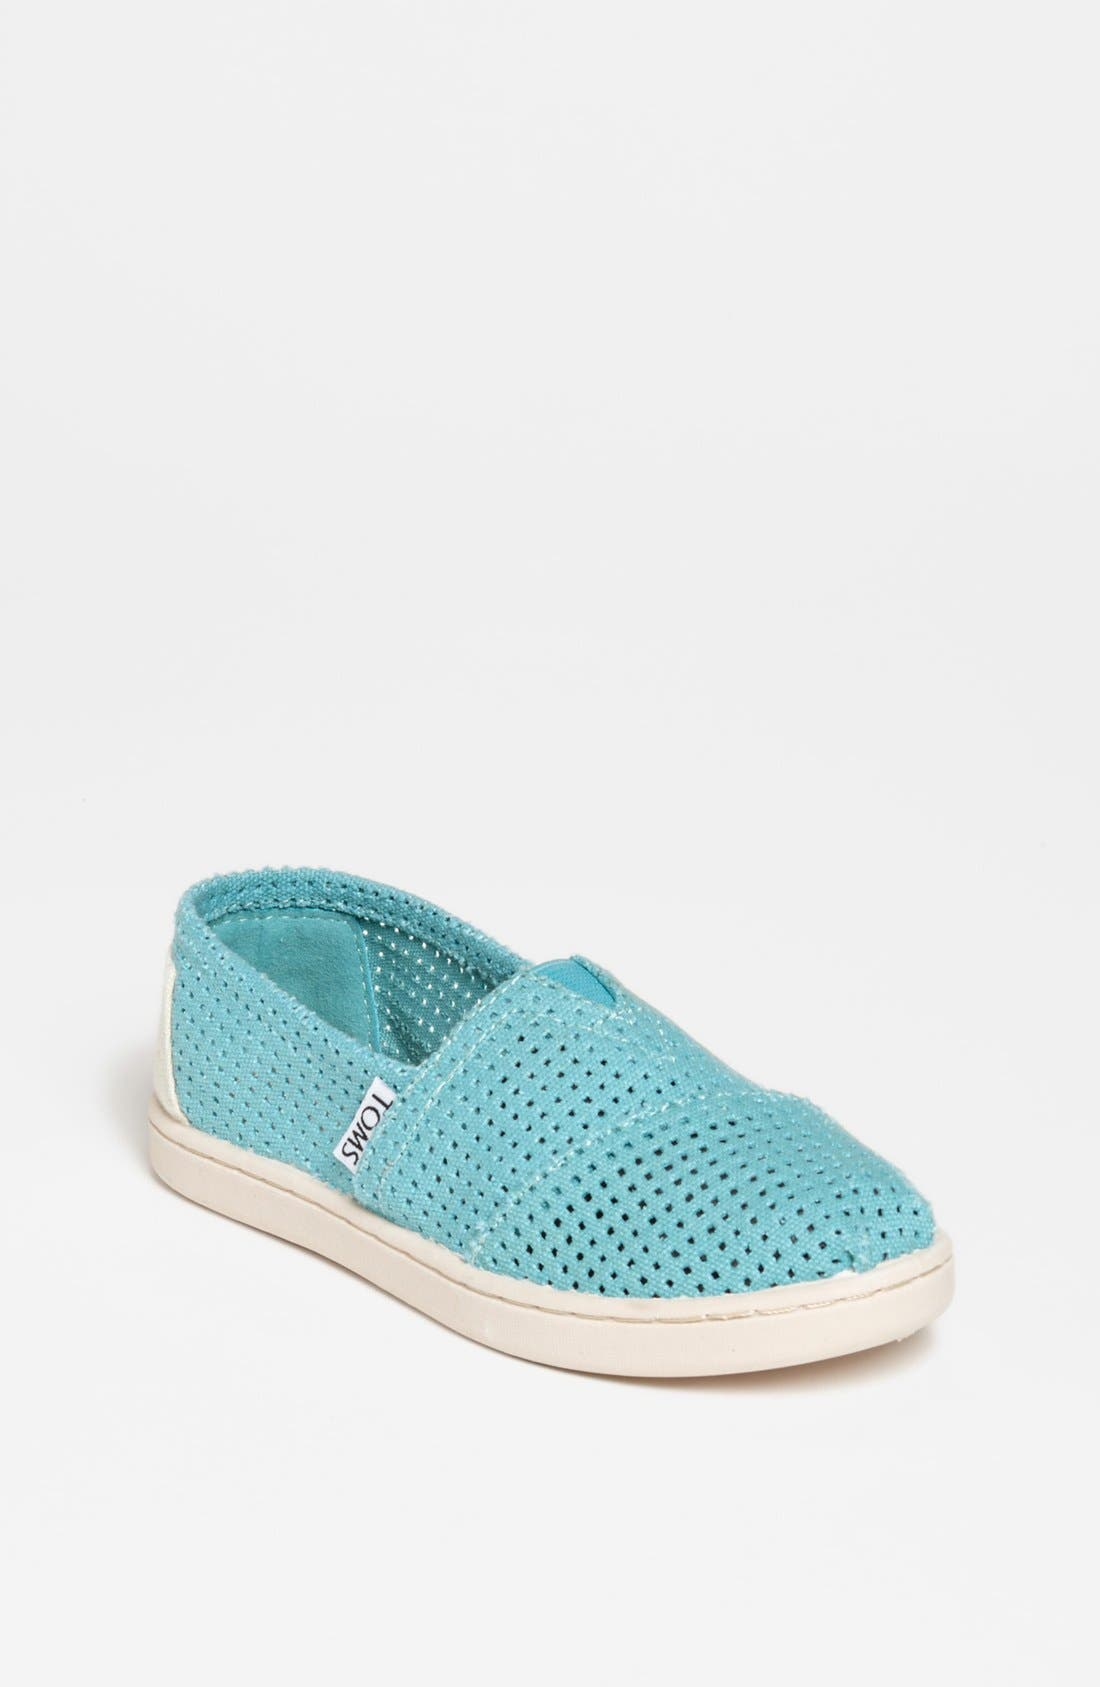 Main Image - TOMS 'Classic - Youth' Perforated Slip-On (Toddler, Little Kid & Big Kid)